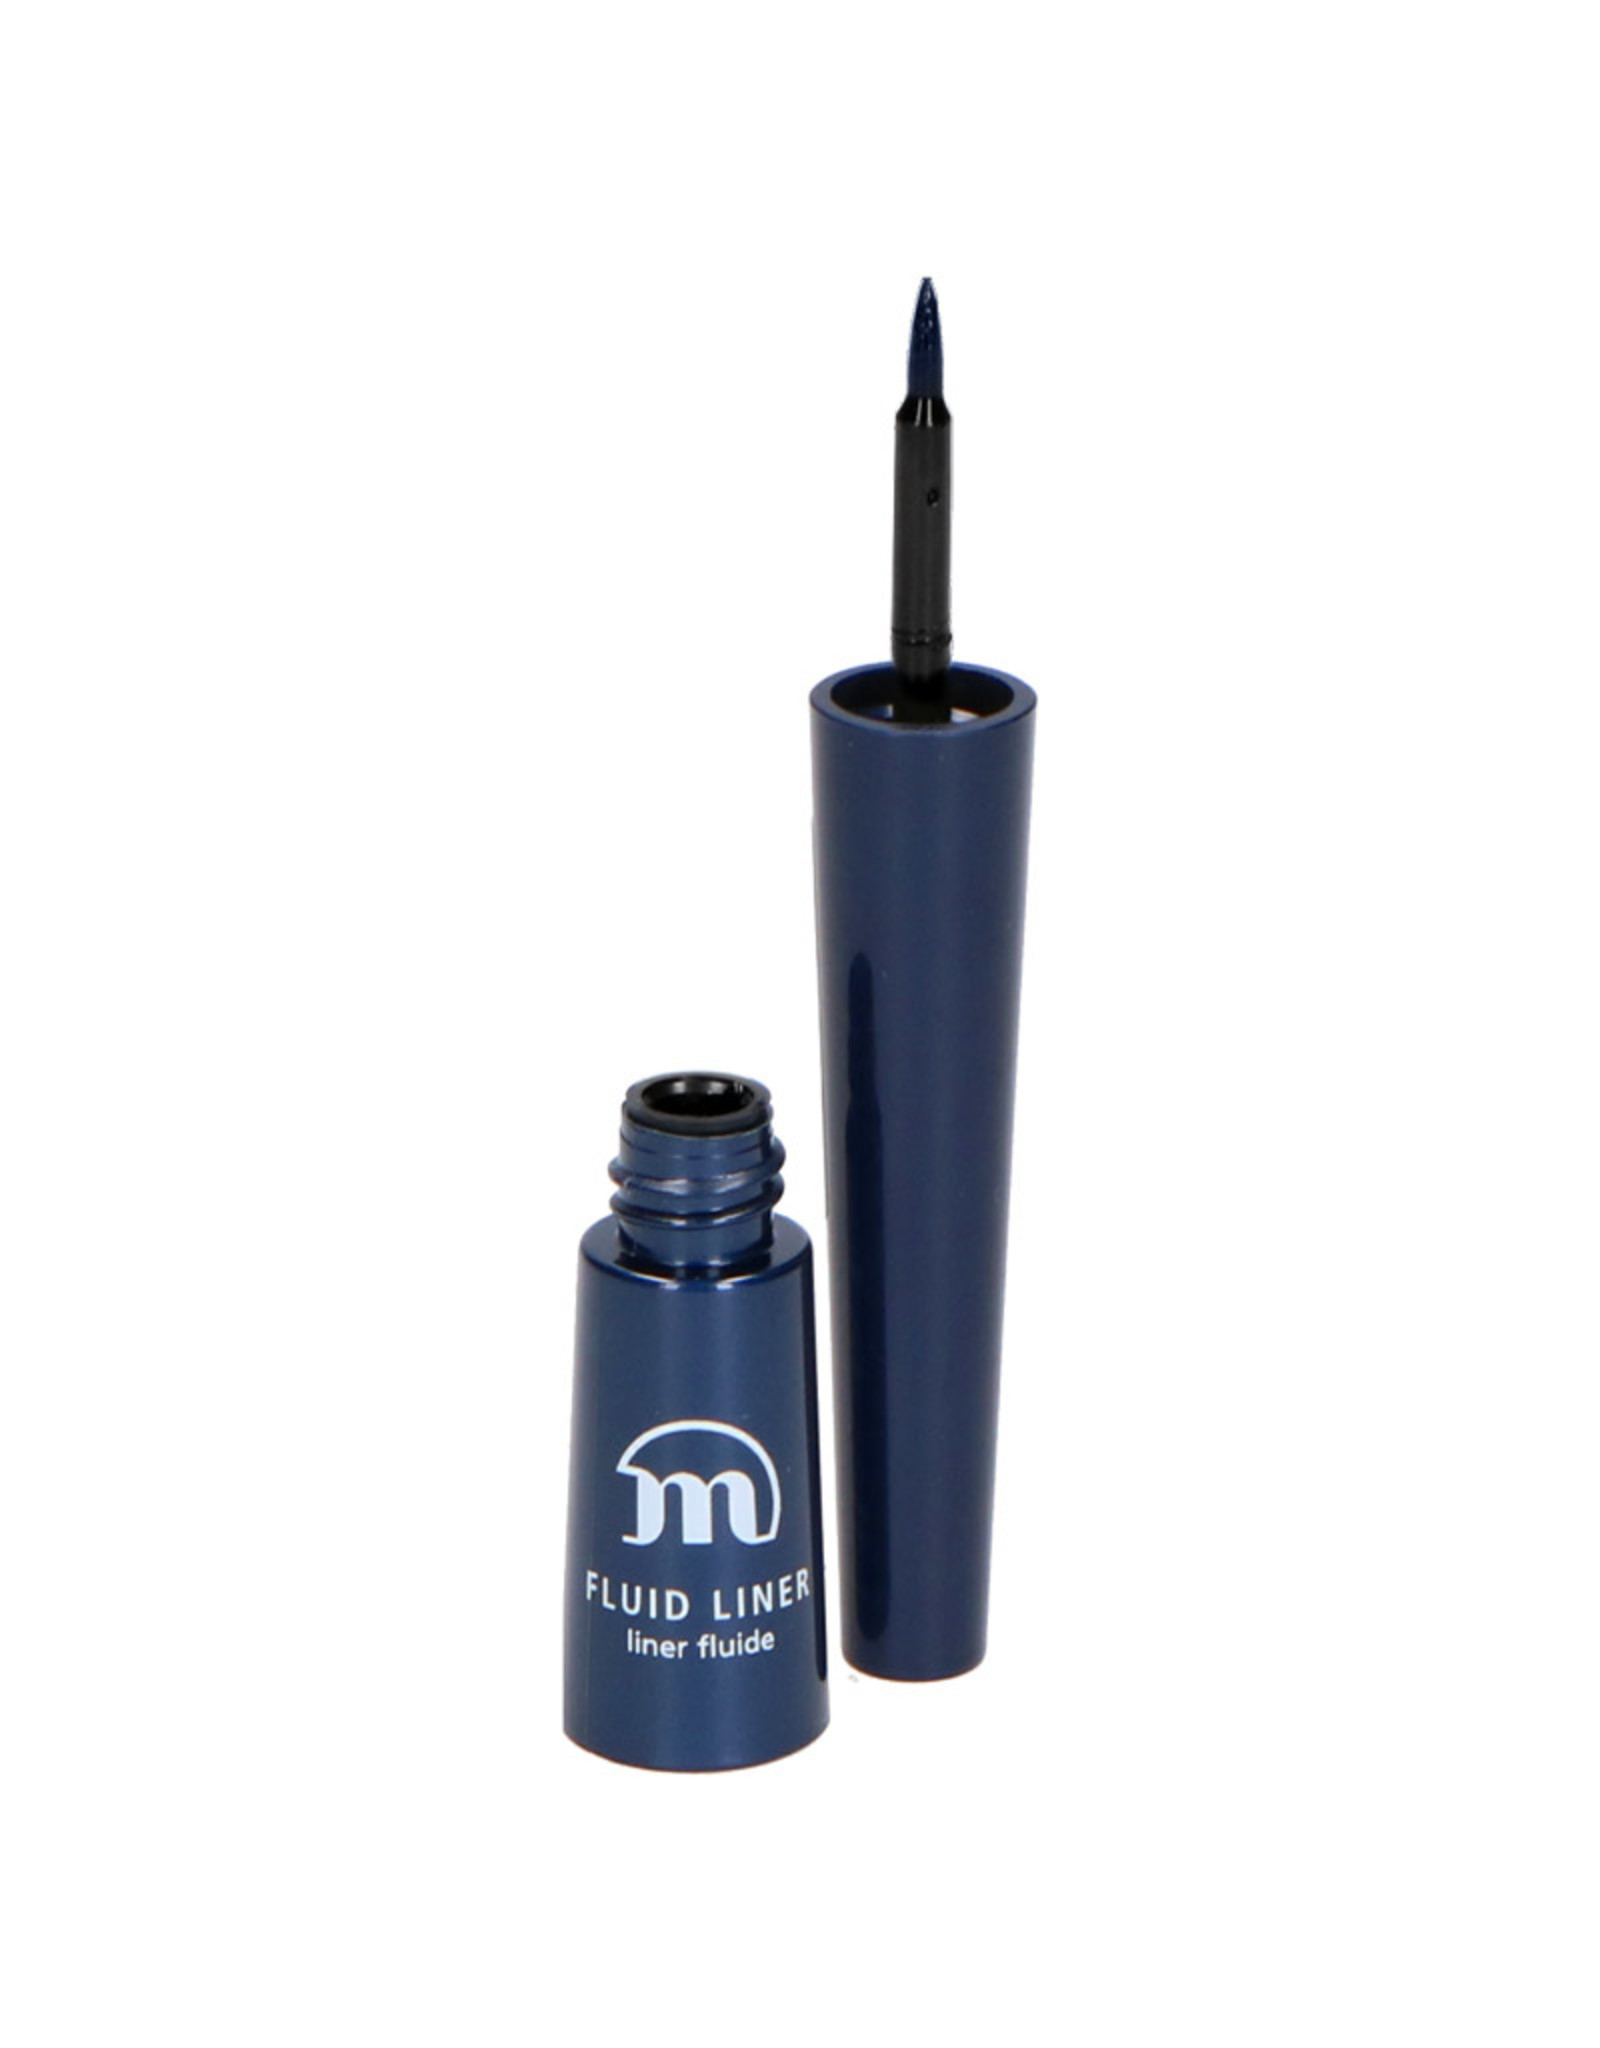 MAKE-UP STUDIO FLUID LINER SPARKLING BLUE